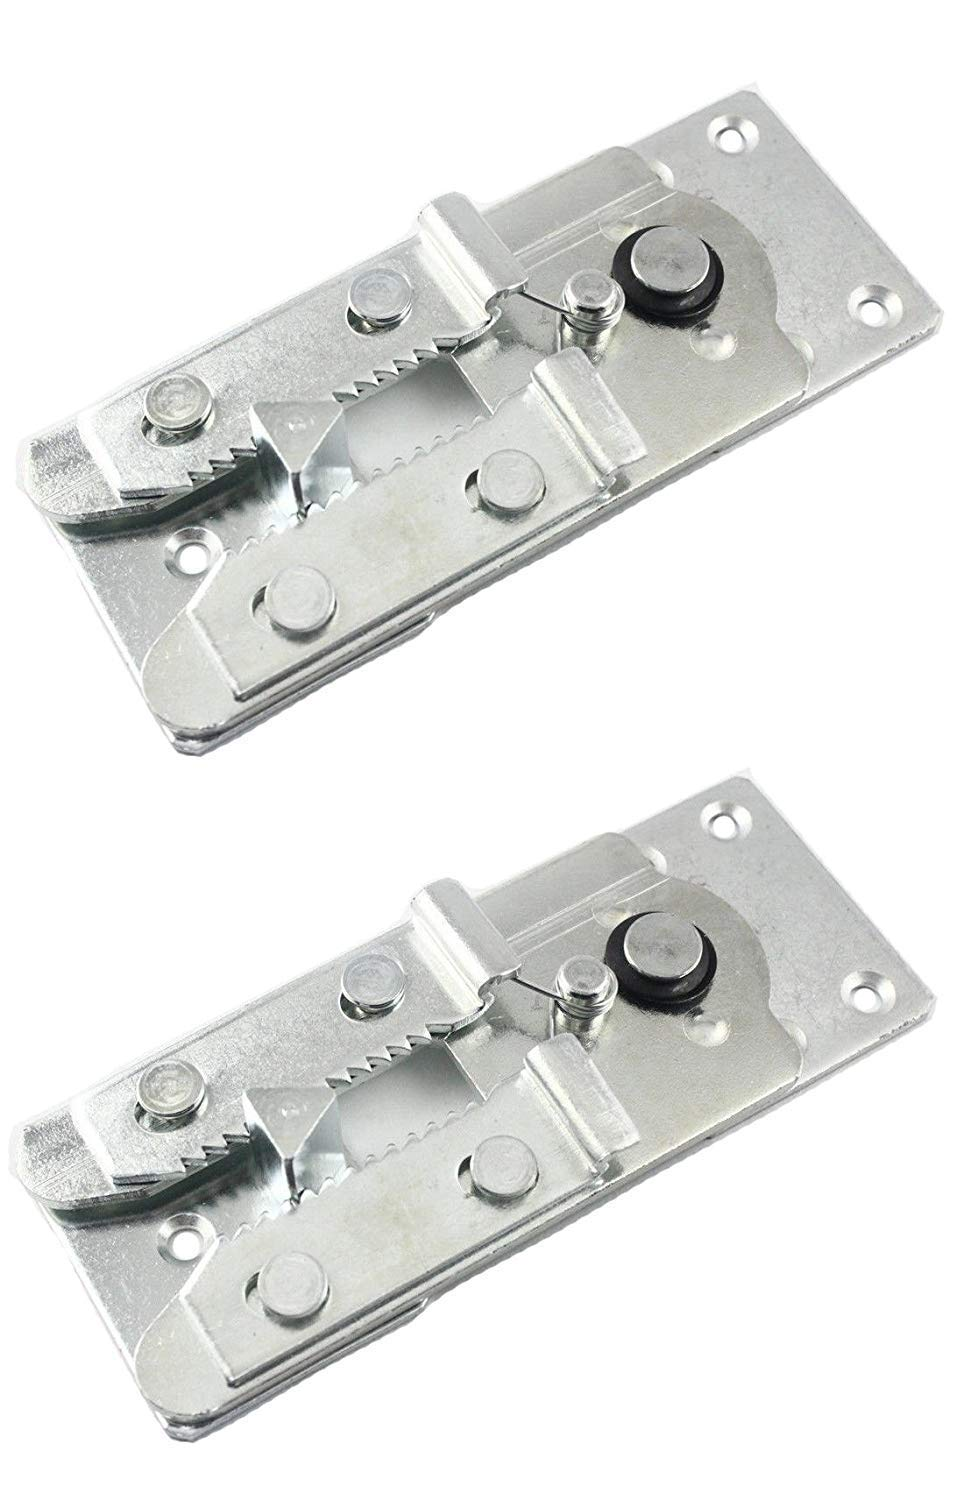 CAFORO Heavy Duty Sofa Couch Joint Snap Furniture Sectional Connector Set of 2